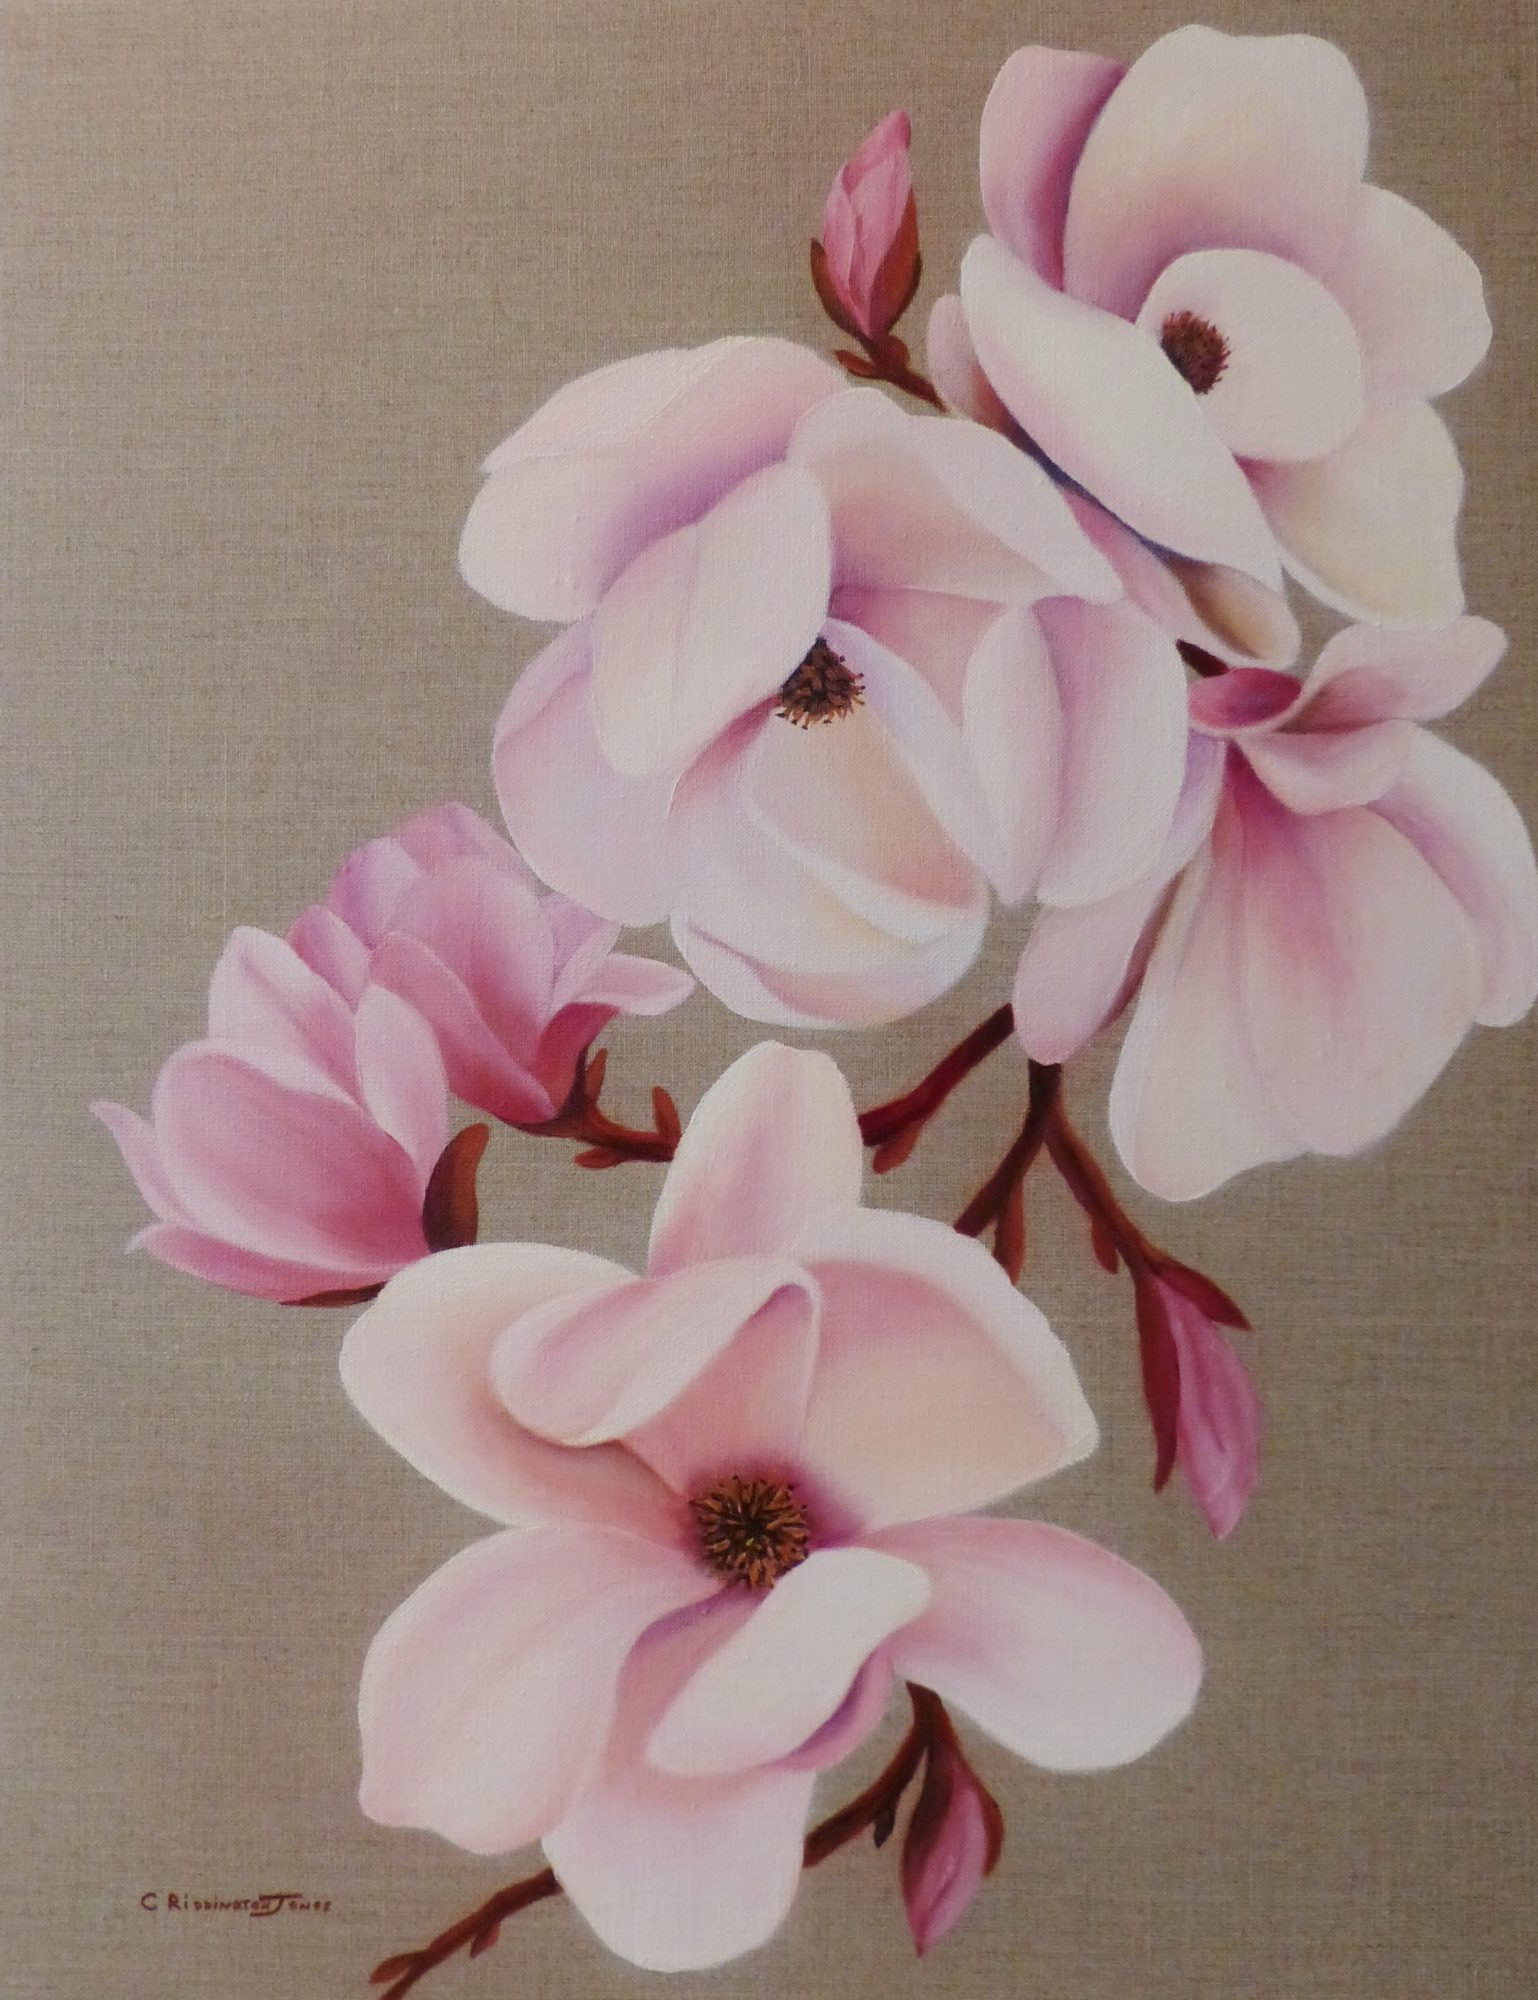 ancient-species-magnolia-clare-riddington-jones-oil-on-linen-55cm-x-70cm